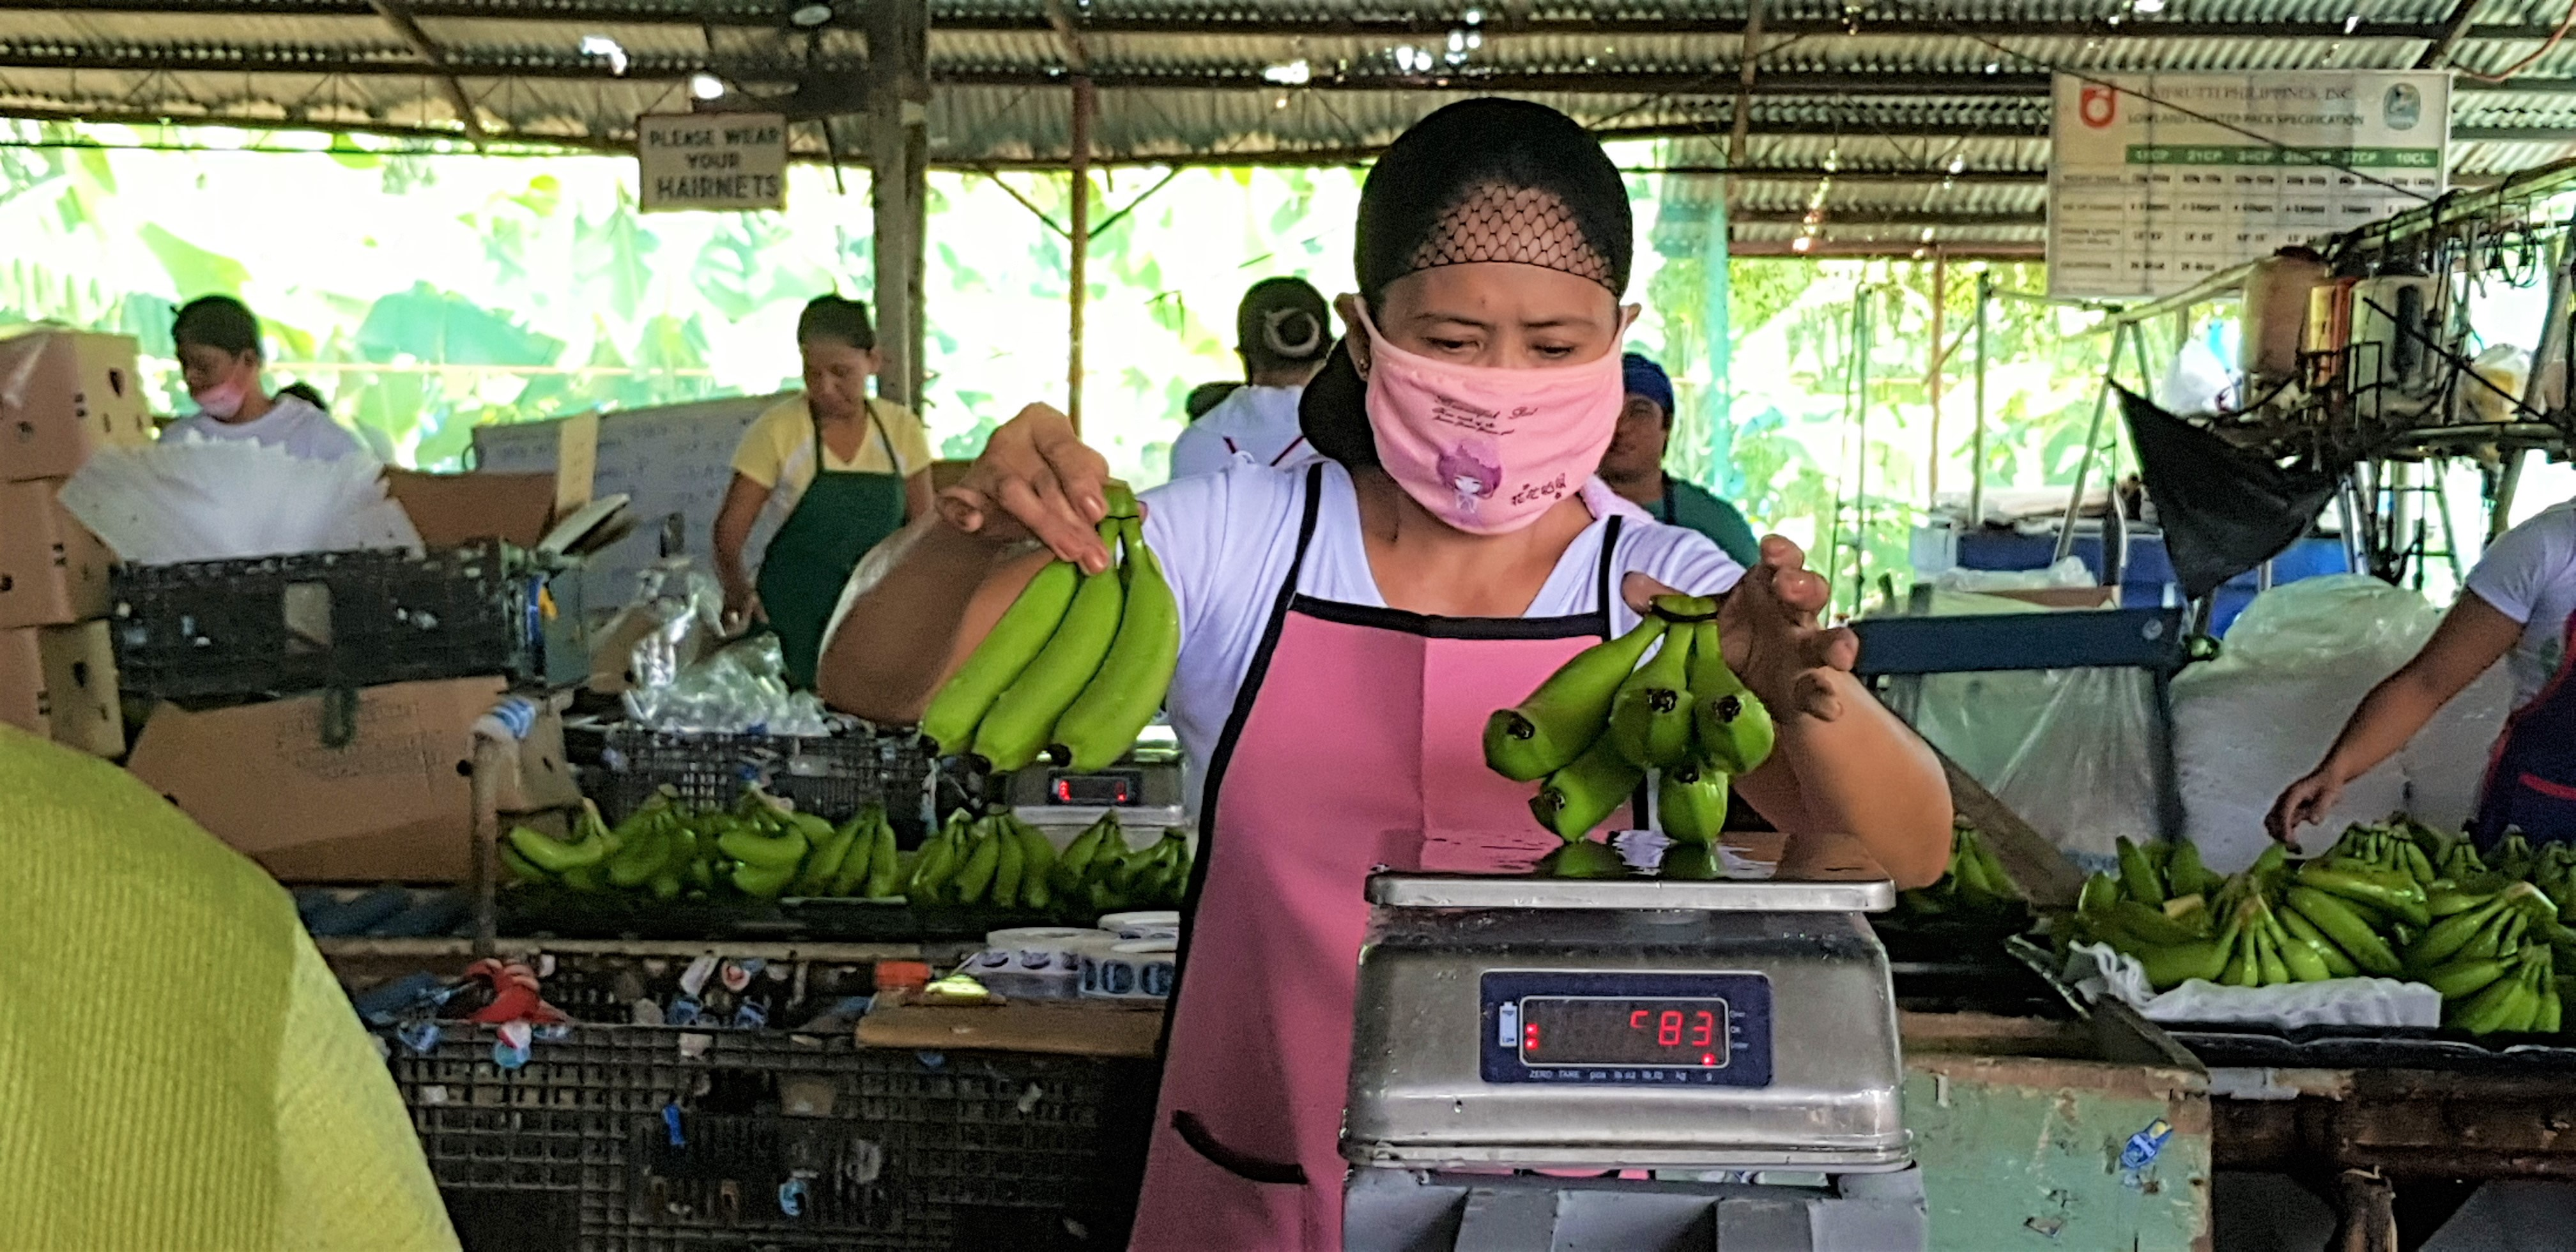 A worker weighs bananas in a packing plant in Davao de Oro. Most women in the banana farming industry work in these plants, handling hundreds of bananas per day.